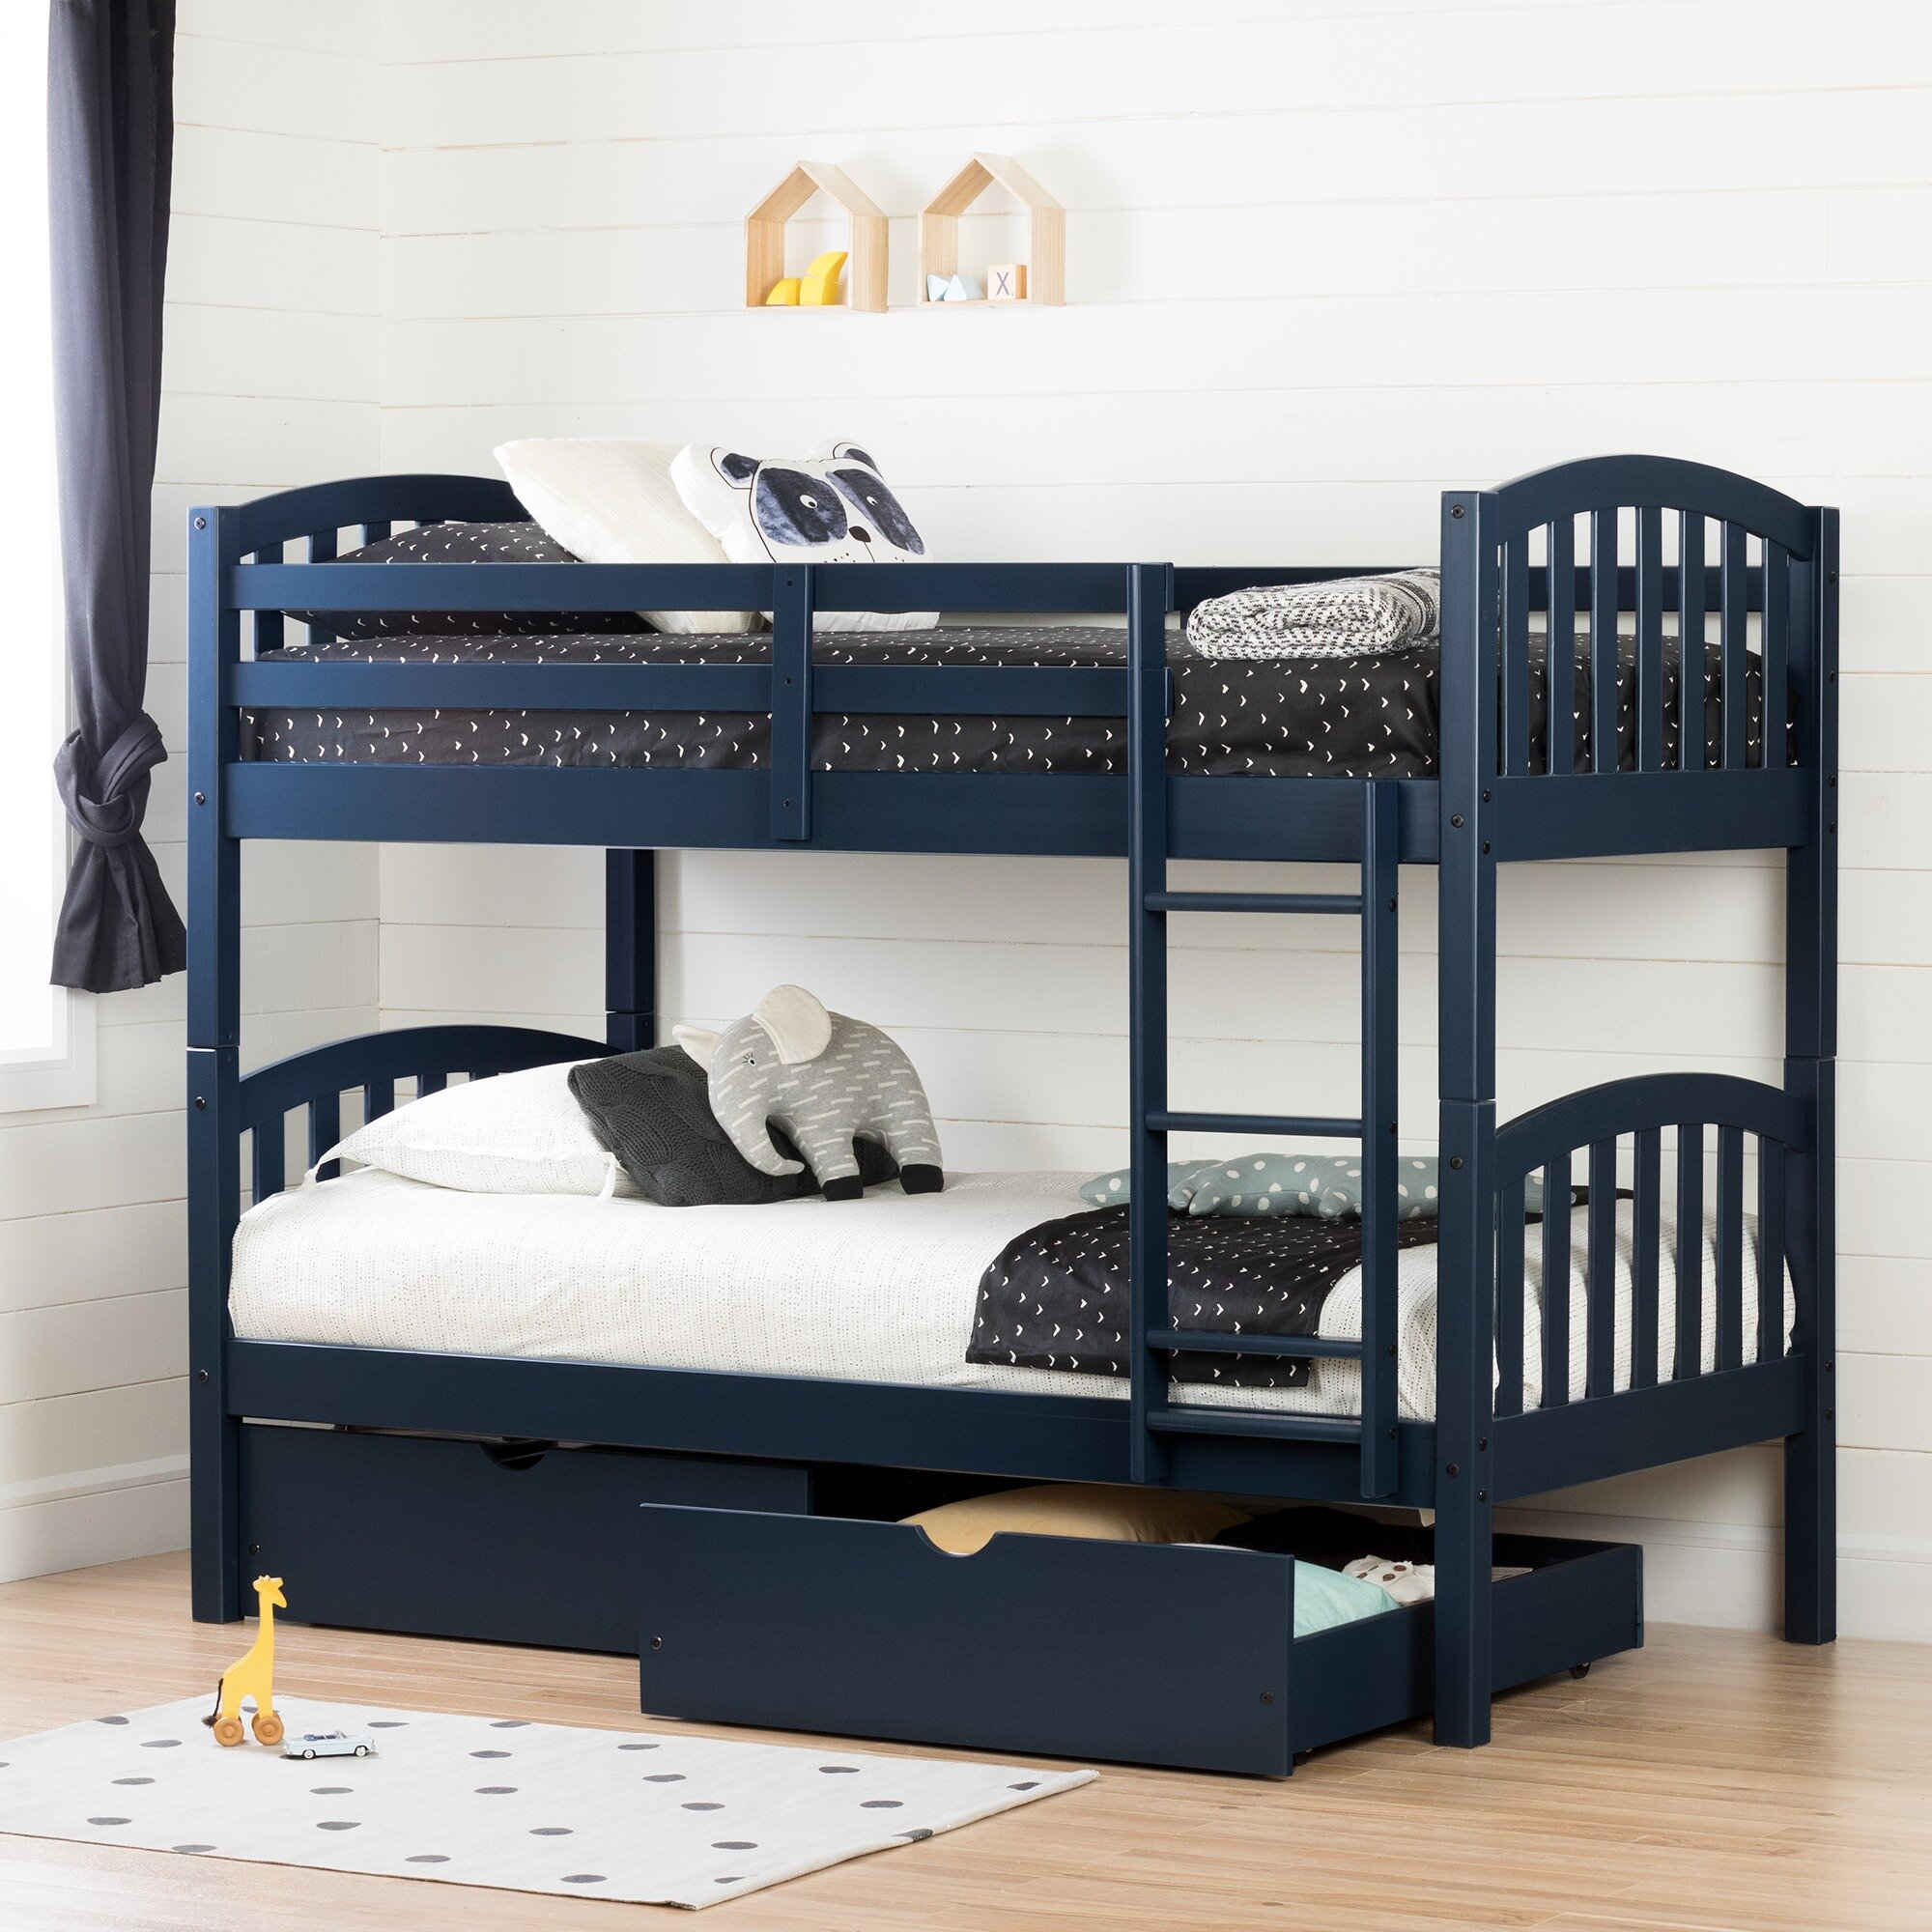 South S Ulysses Bunk Bed With Storage Drawers Reviews